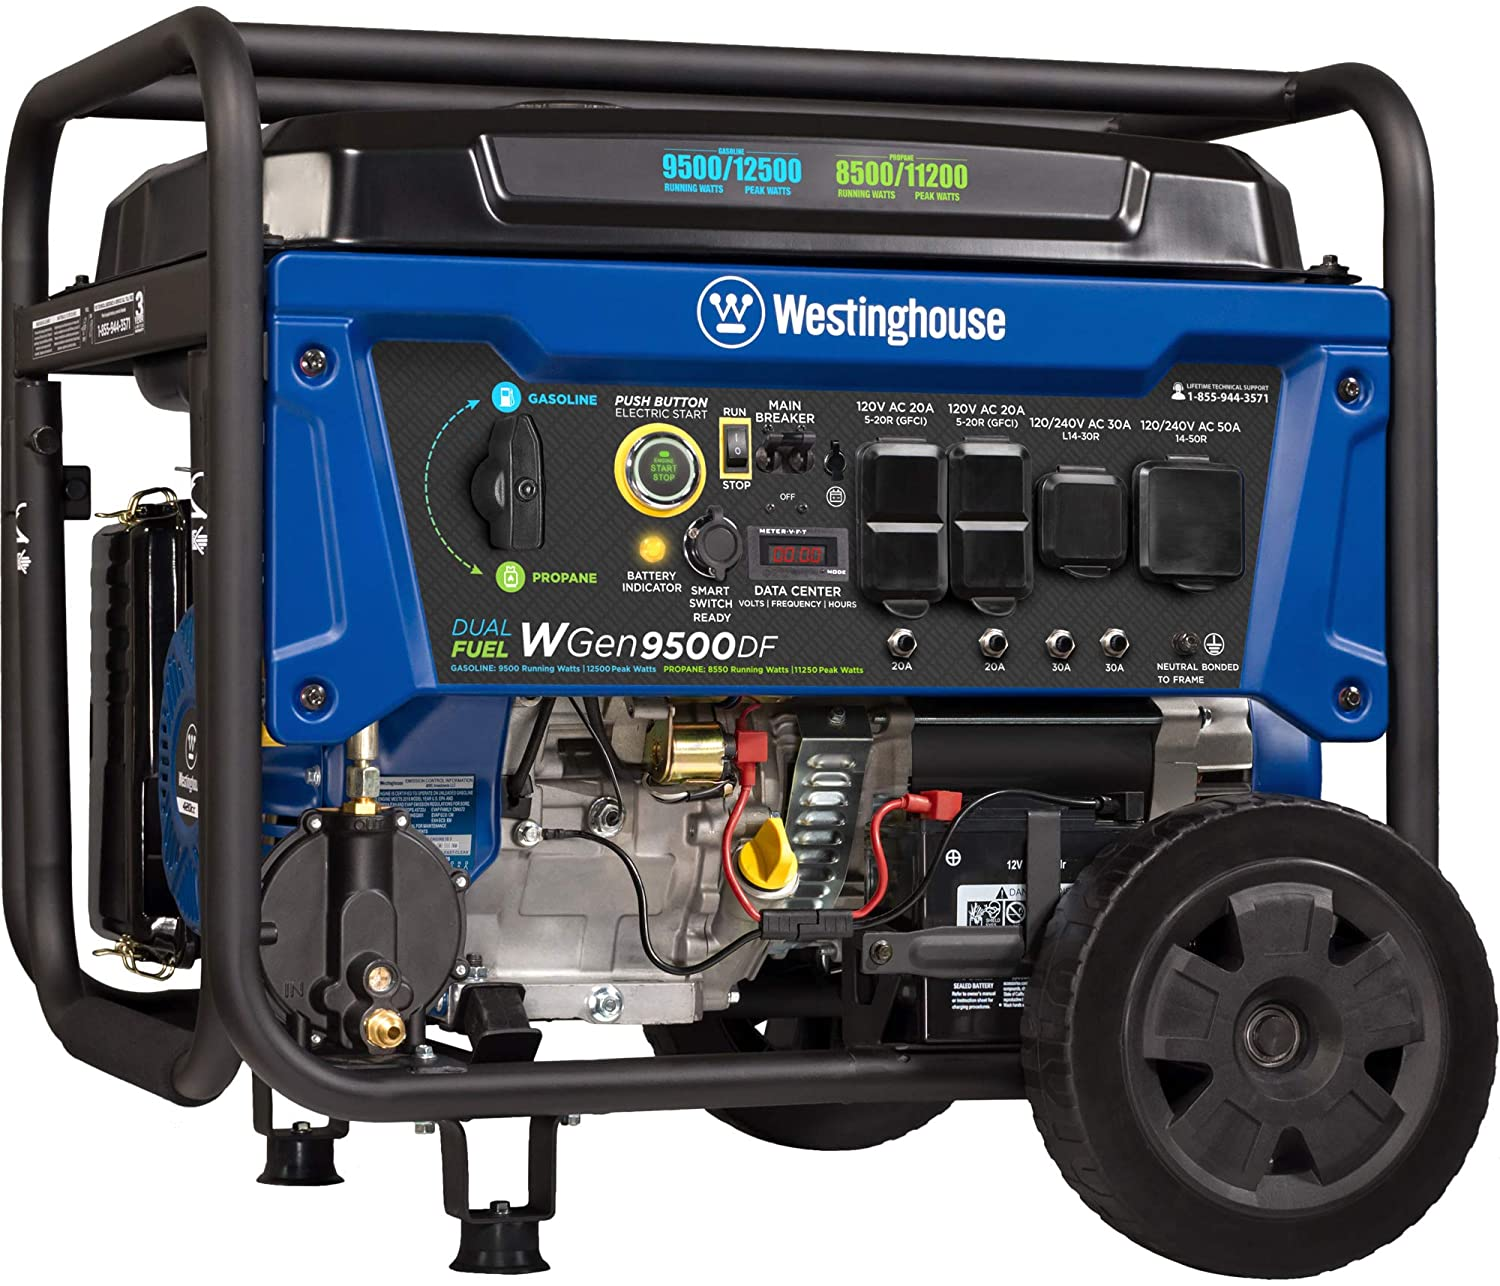 Top 10 Best Generators For Home Use Review (2021) 10